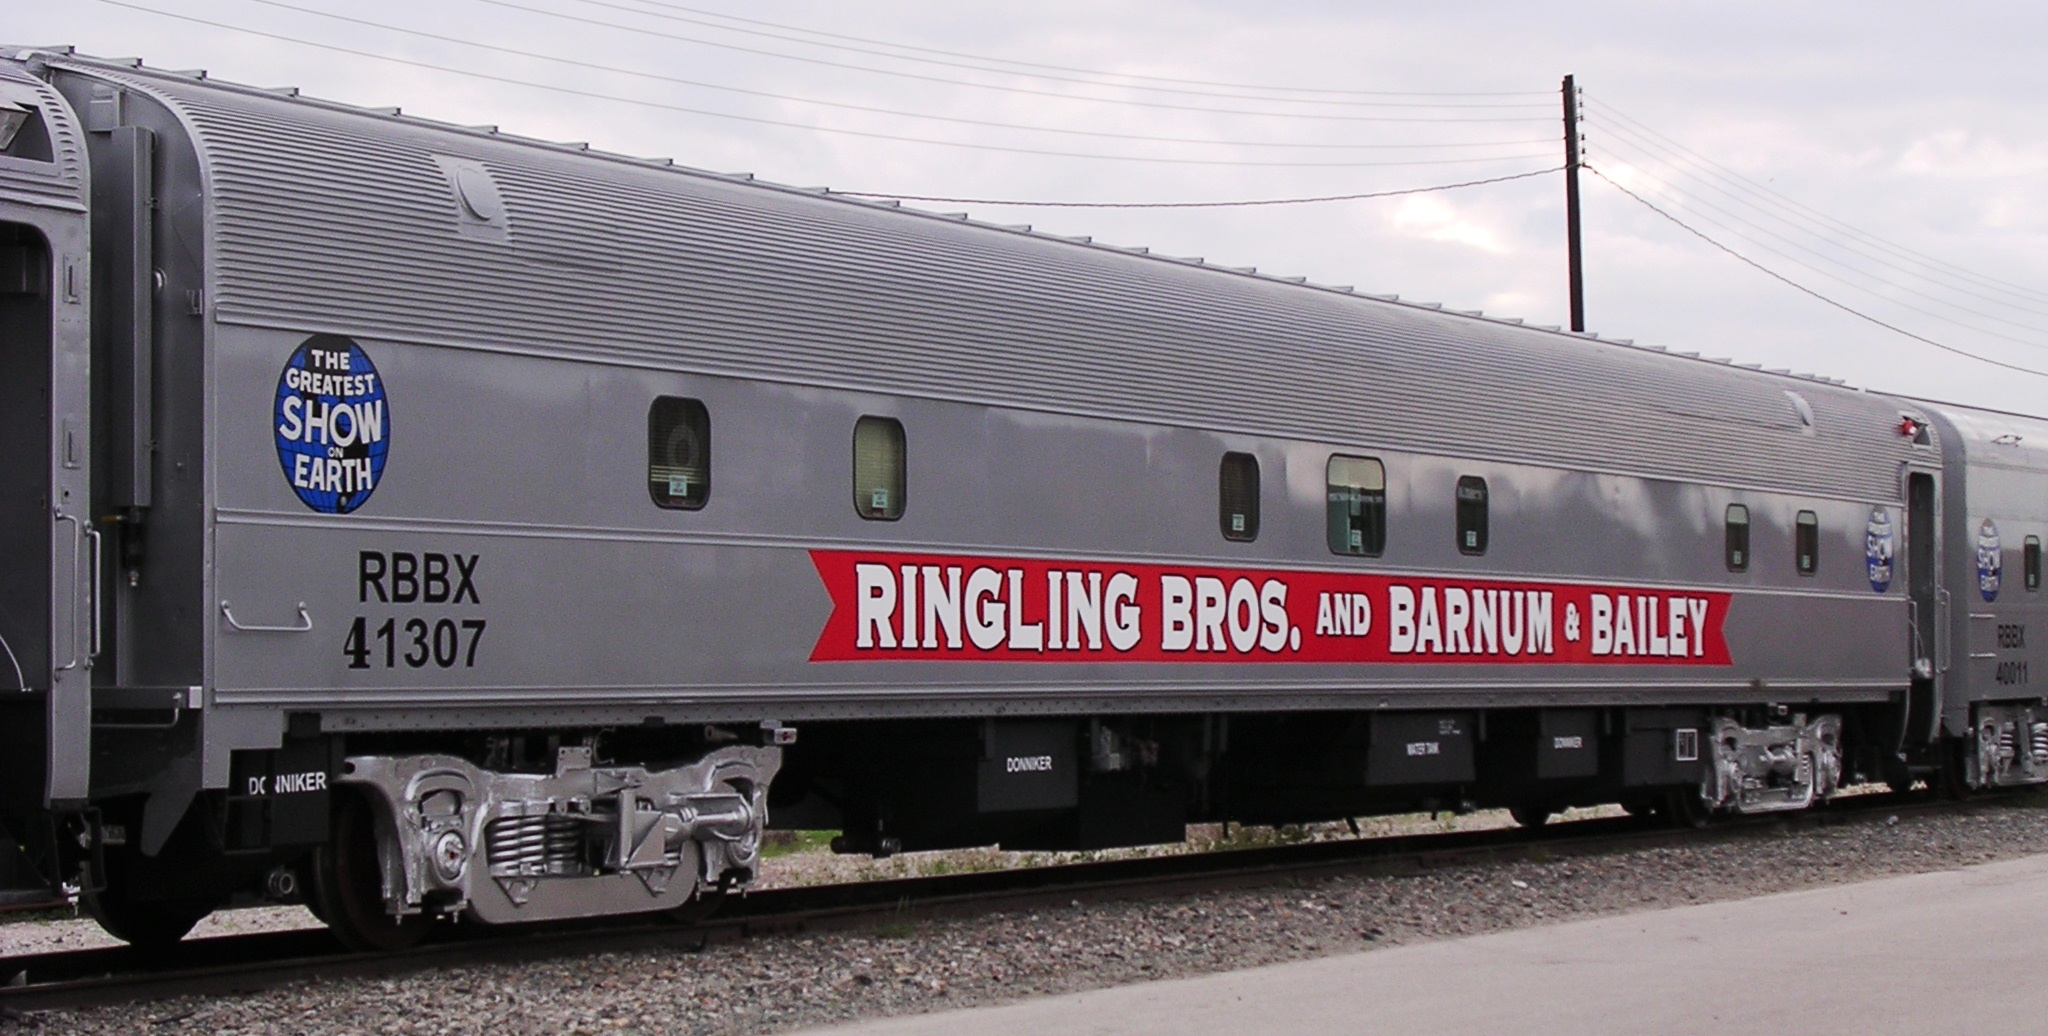 The iconic train cars of the Ringling Circus